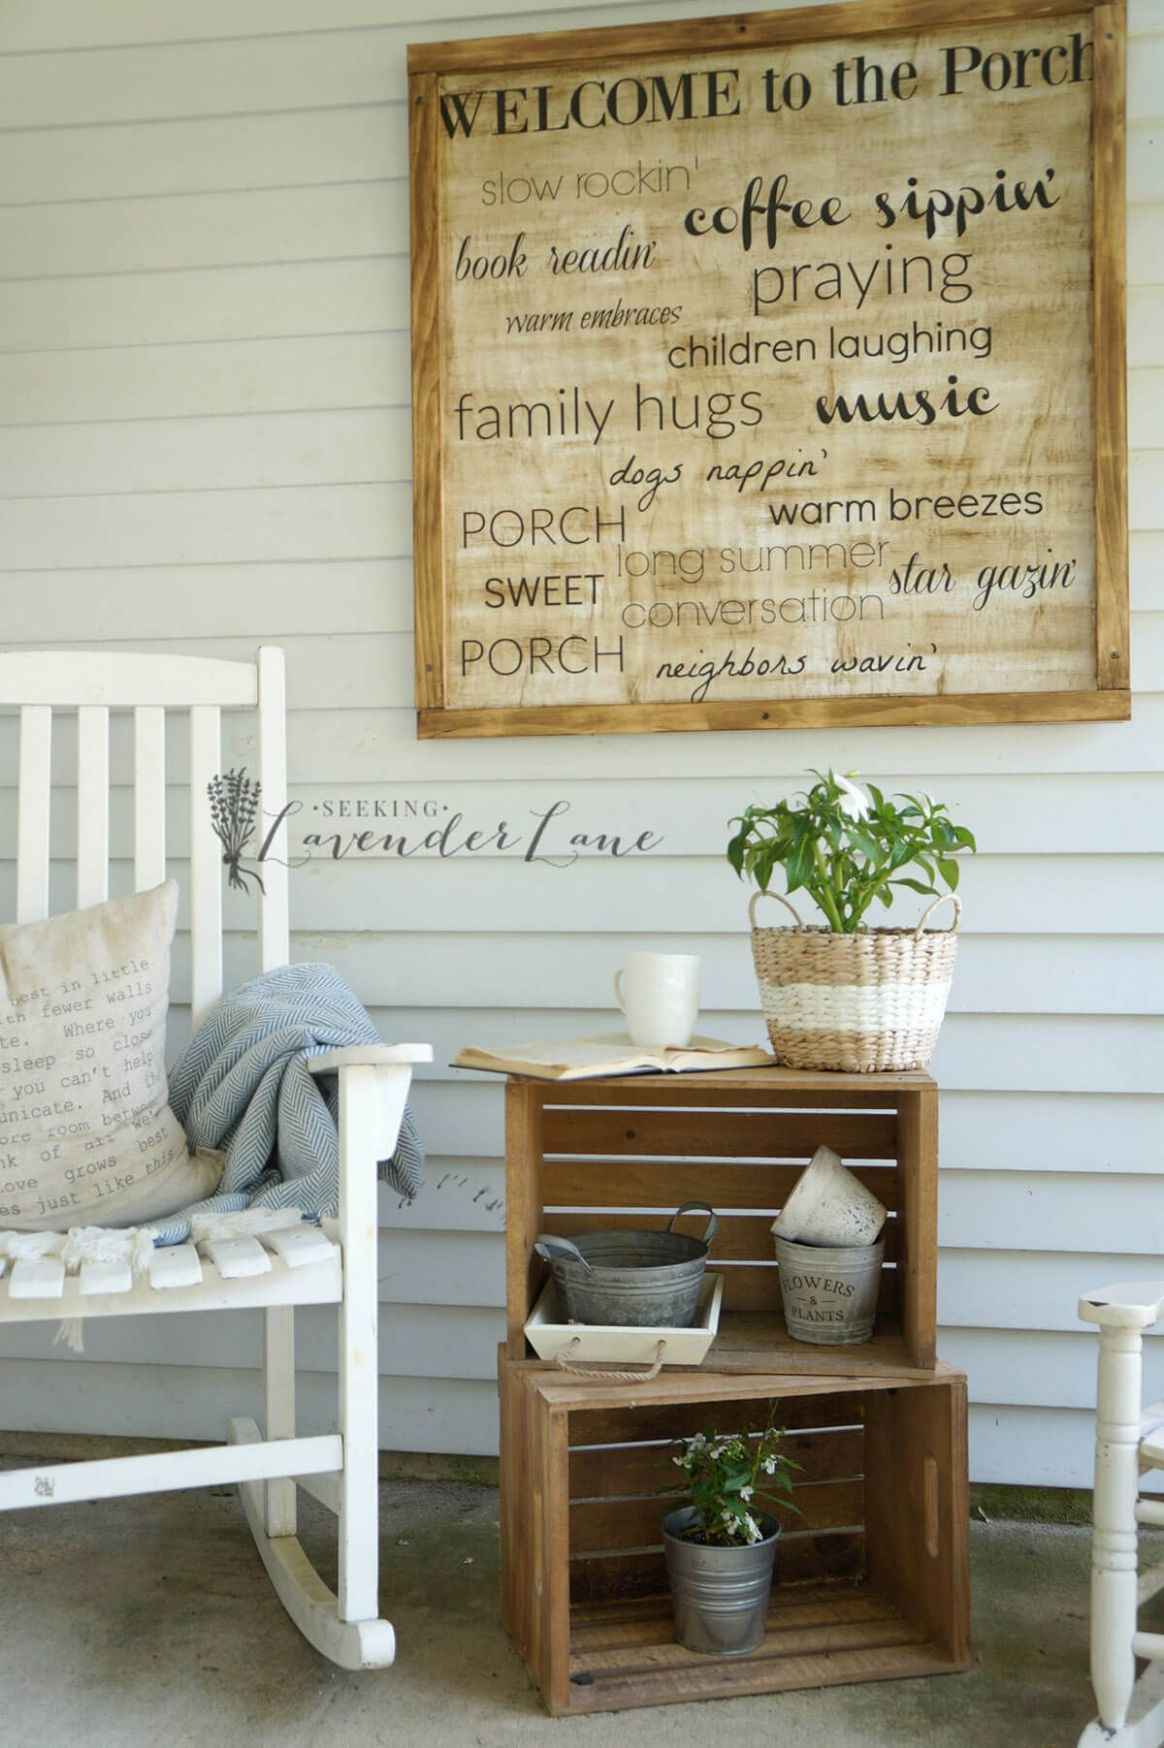 12 Beautiful Porch Wall Decor Ideas to Make Your Outdoor Area More ..